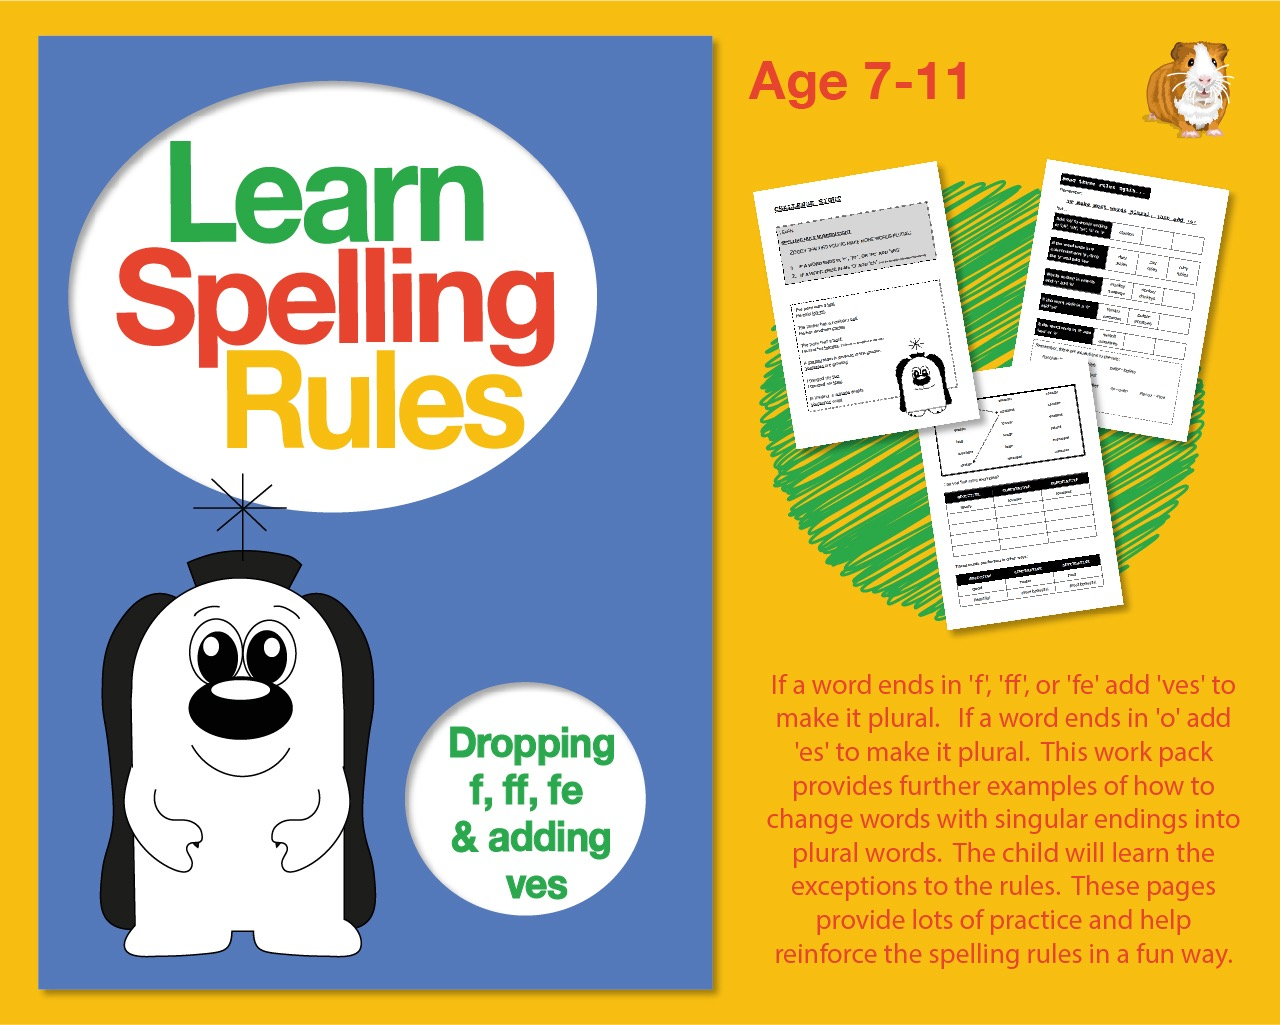 Learn Spelling Rules Challenge 8: Forming Plurals By Dropping 'f', 'ff', 'fe' And Adding 'ves'